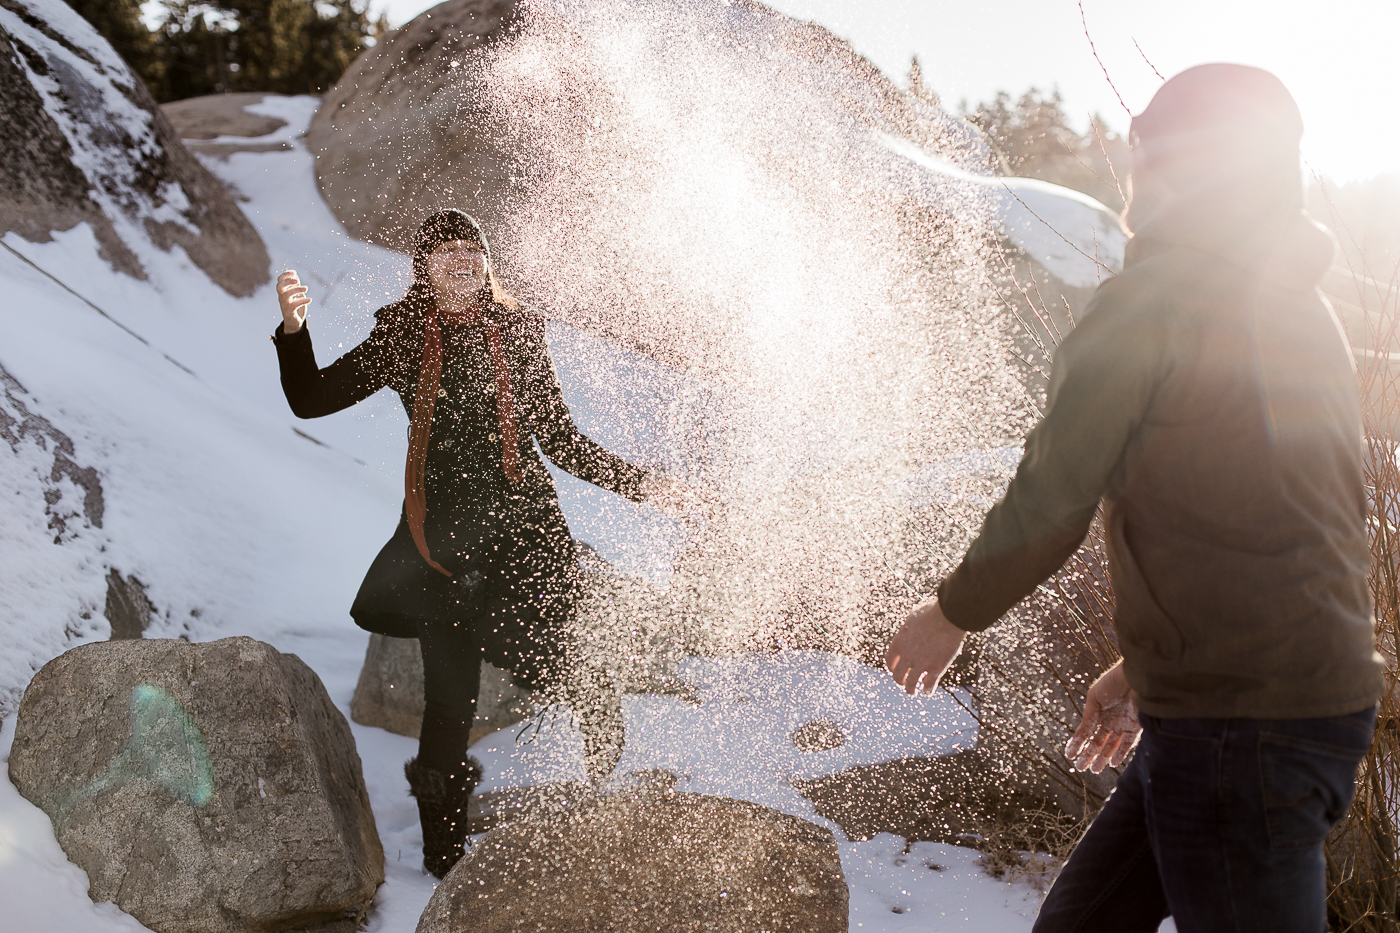 Snowy engagement photos by Wyoming based photographer